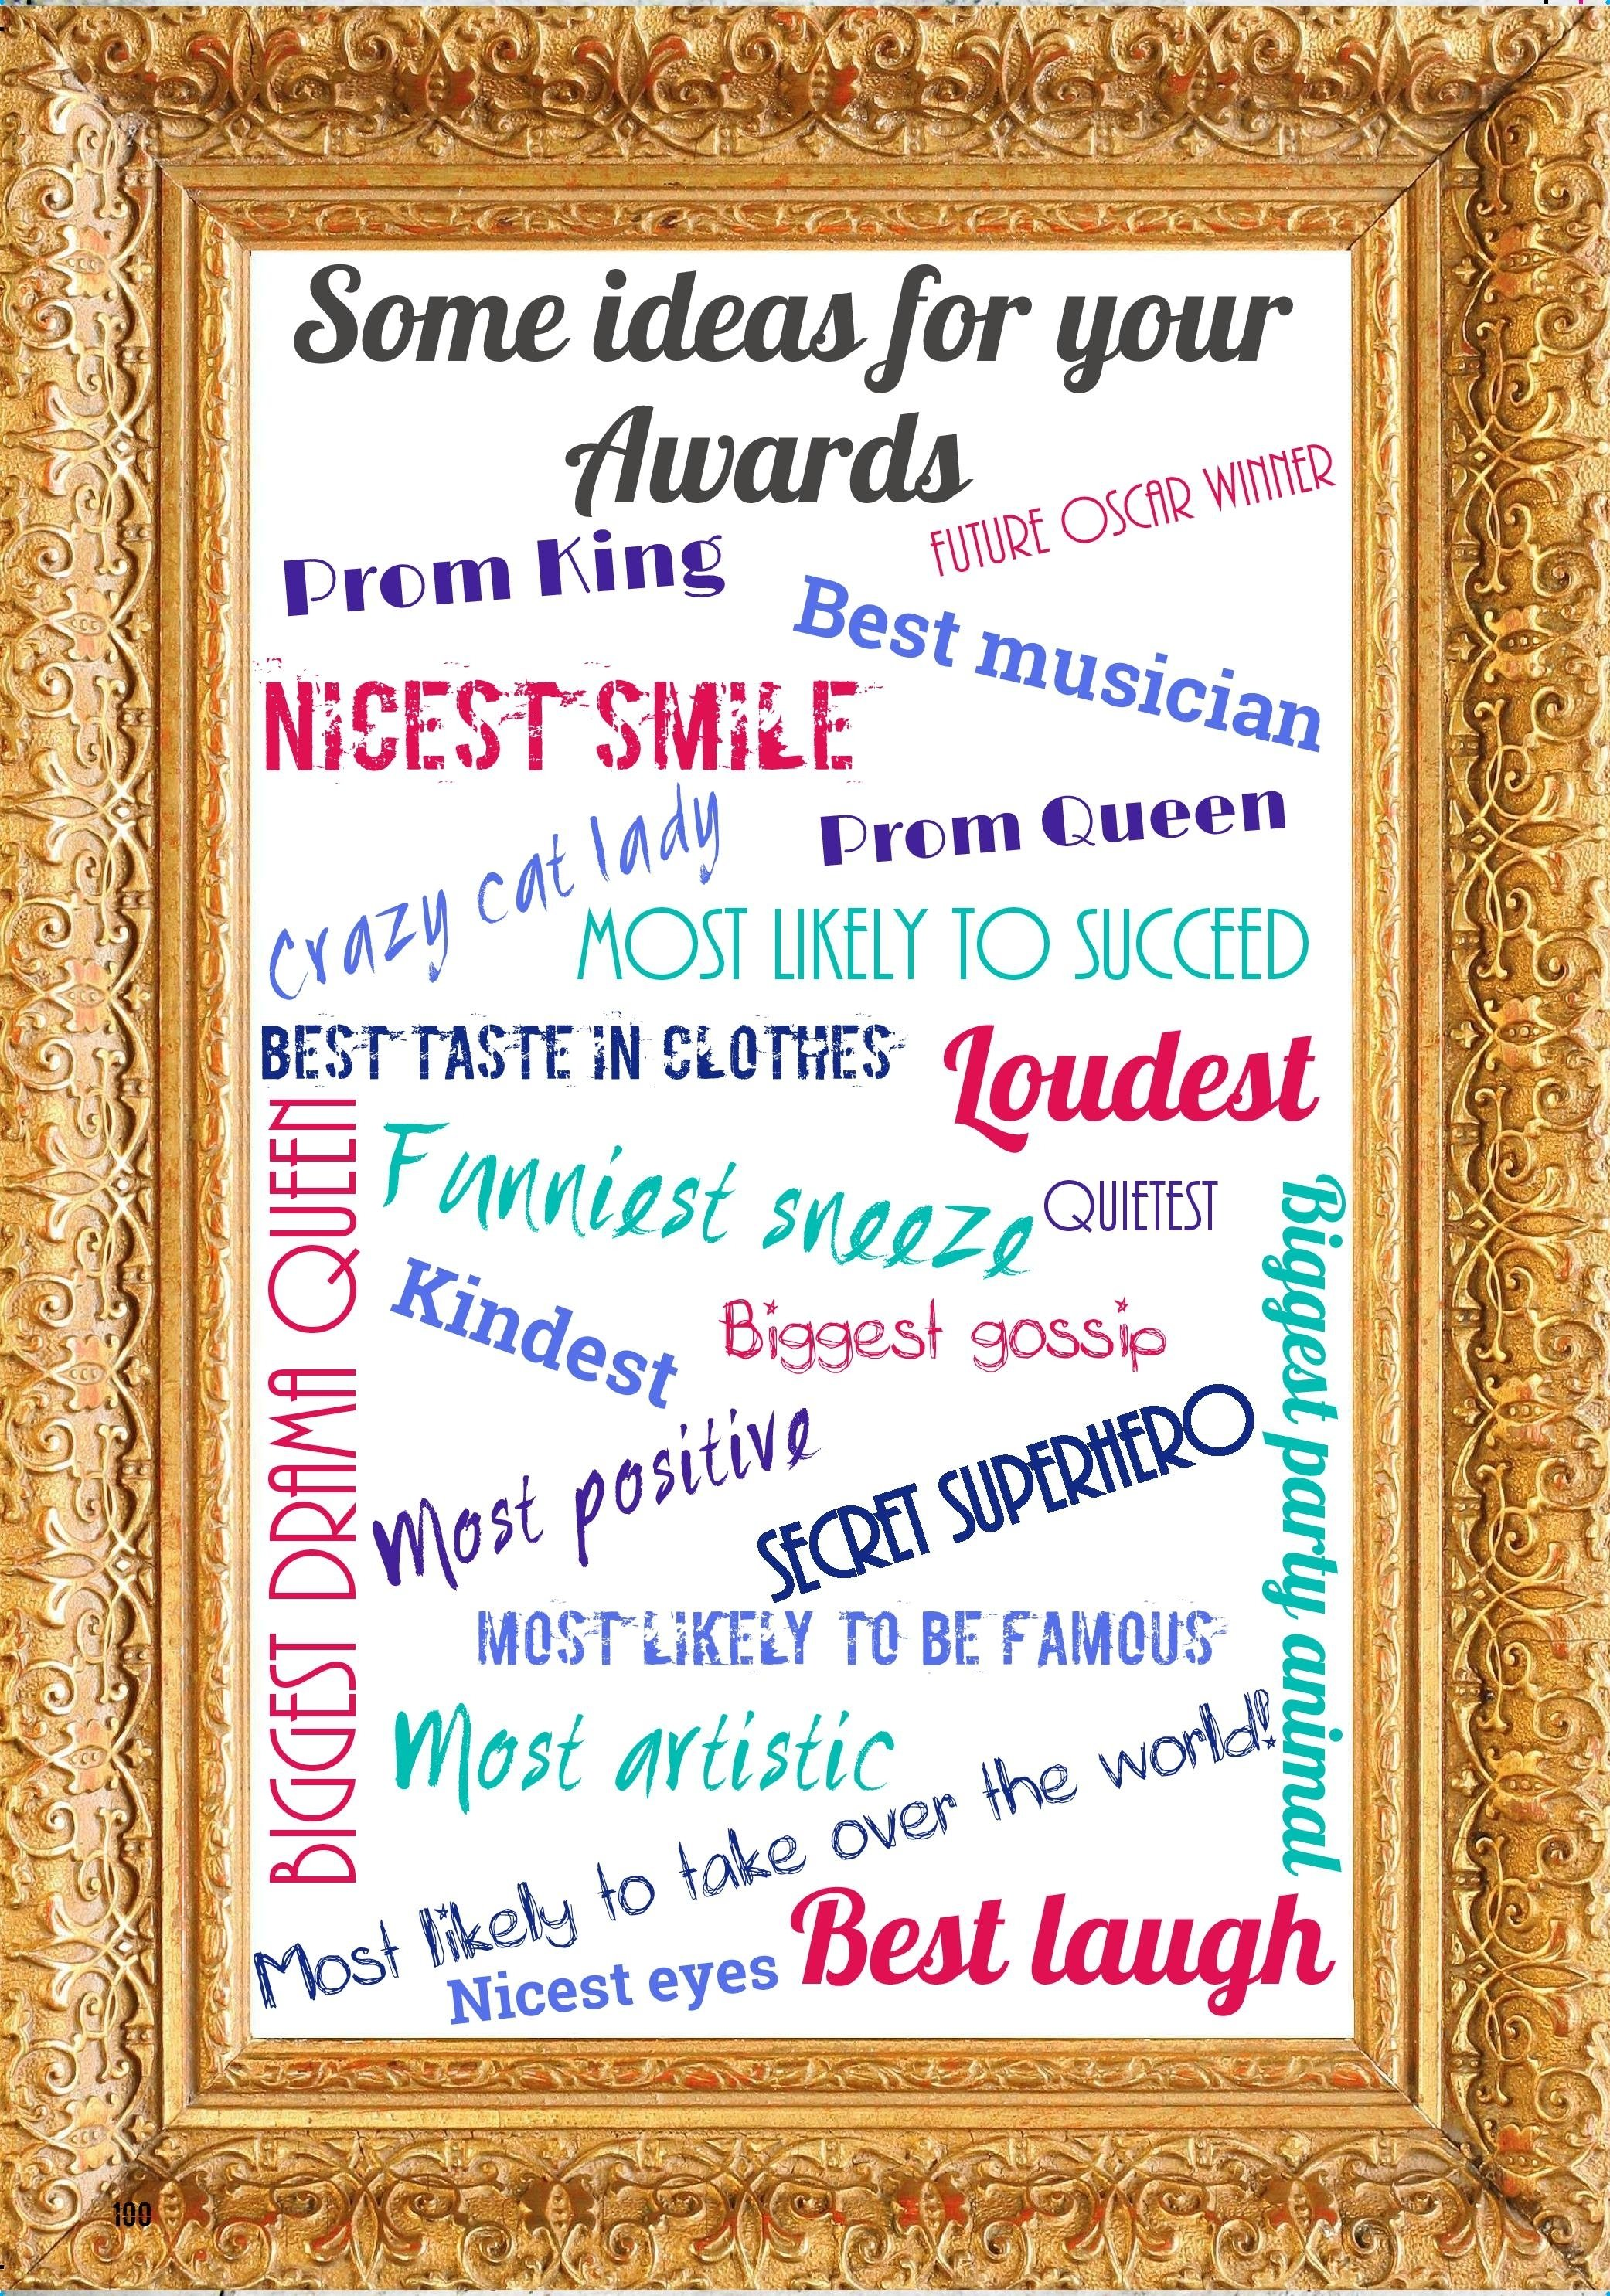 10 Perfect Funny Award Ideas For Employees ideas for awards categories supporting your yearbook success